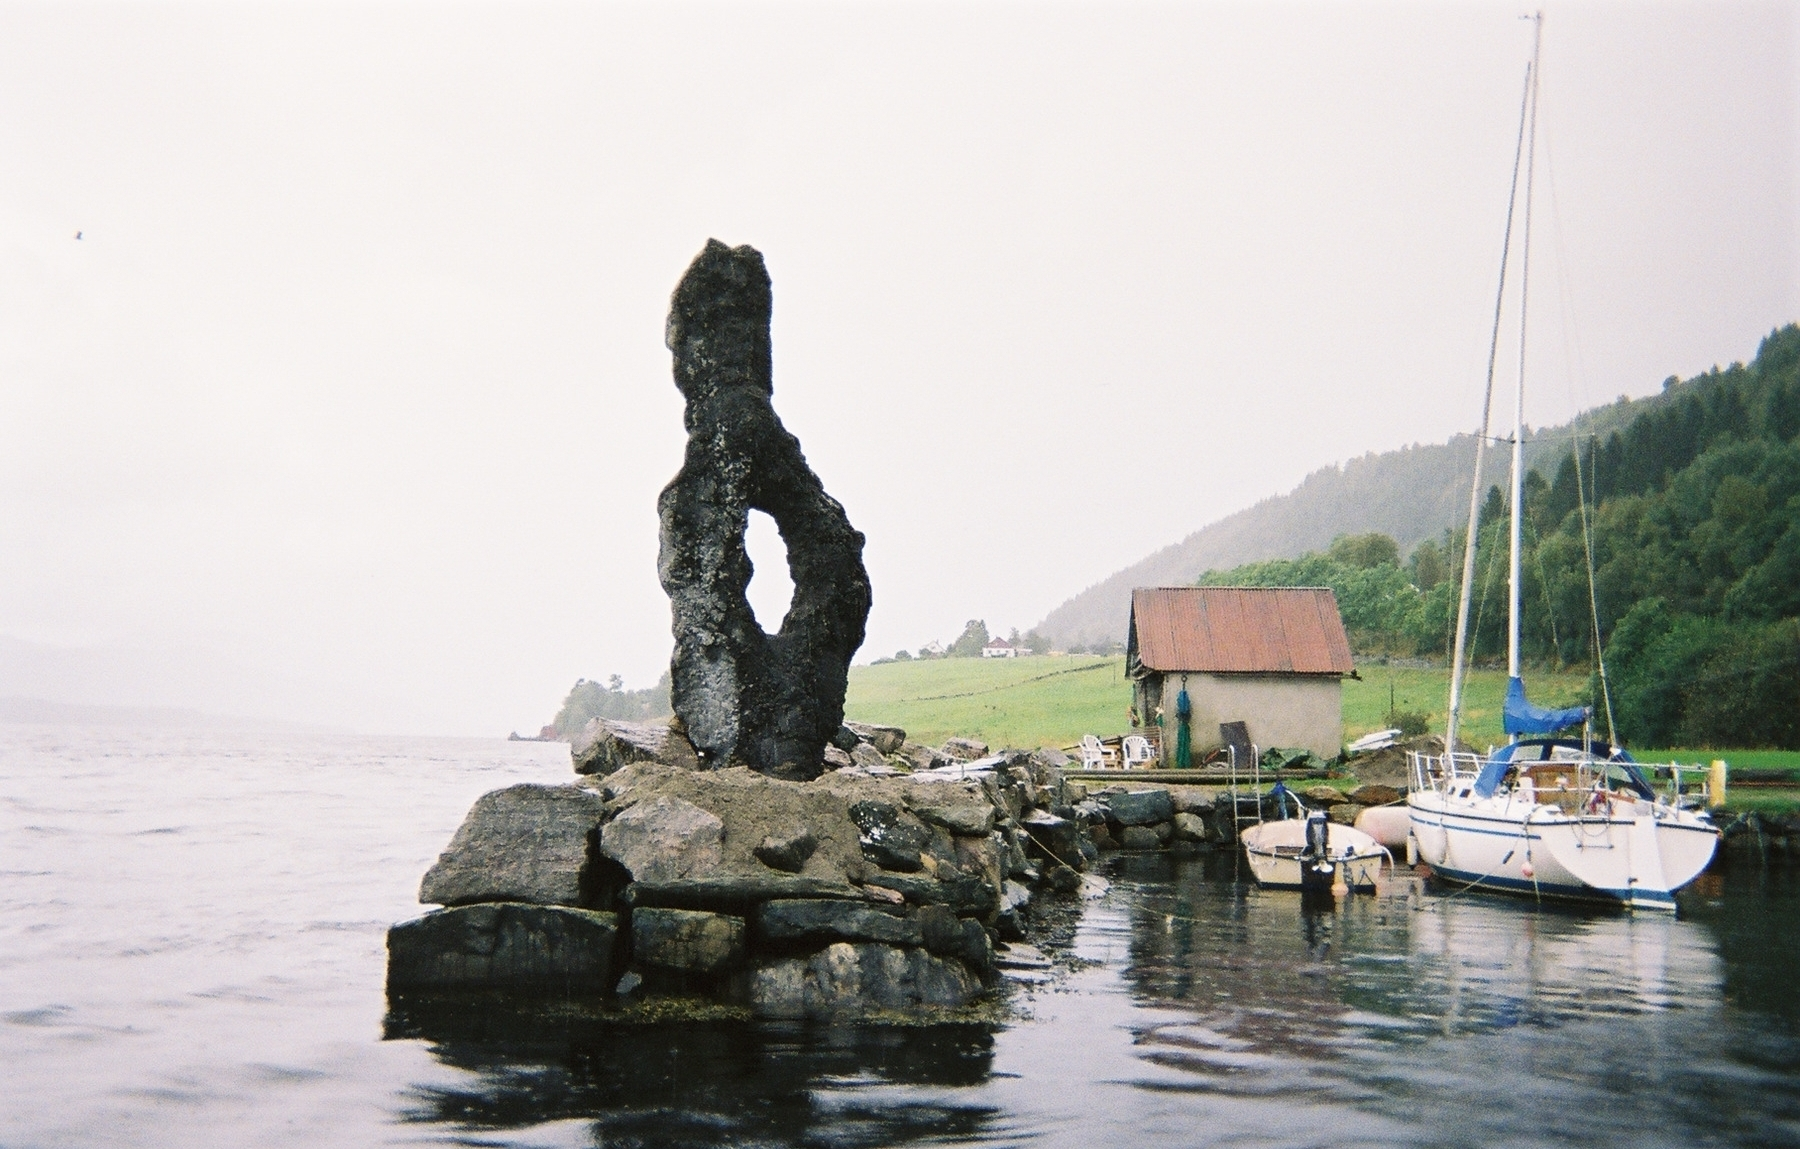 Vevring, Norway